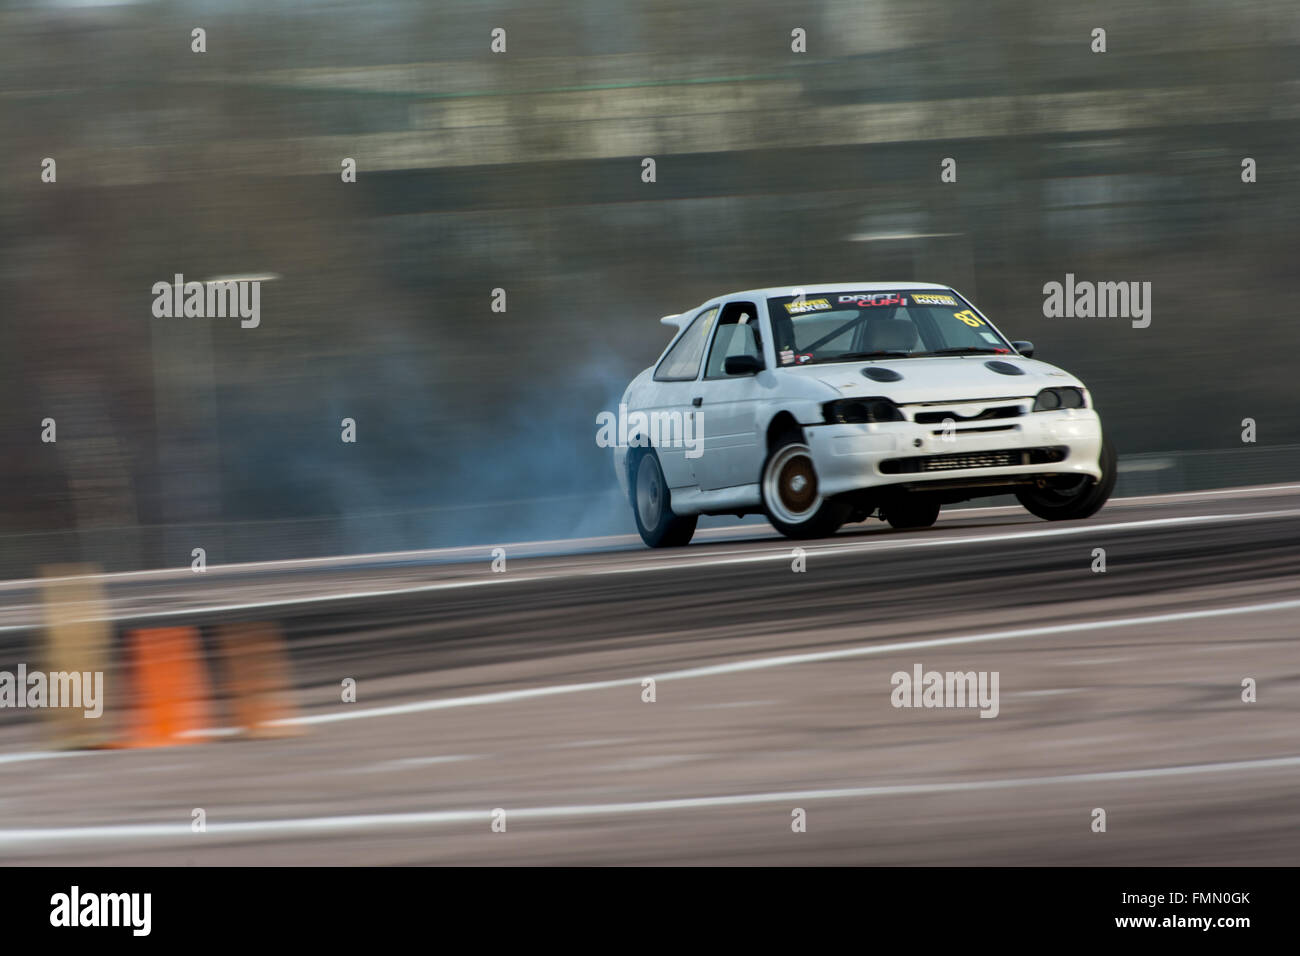 Corby, UK. 12th Mar, 2016. Ford Escort drift car during Drift Matsuri at Rockingham Motor Speedway on March 12, 2016 in Corby, Northamptonshire, ...